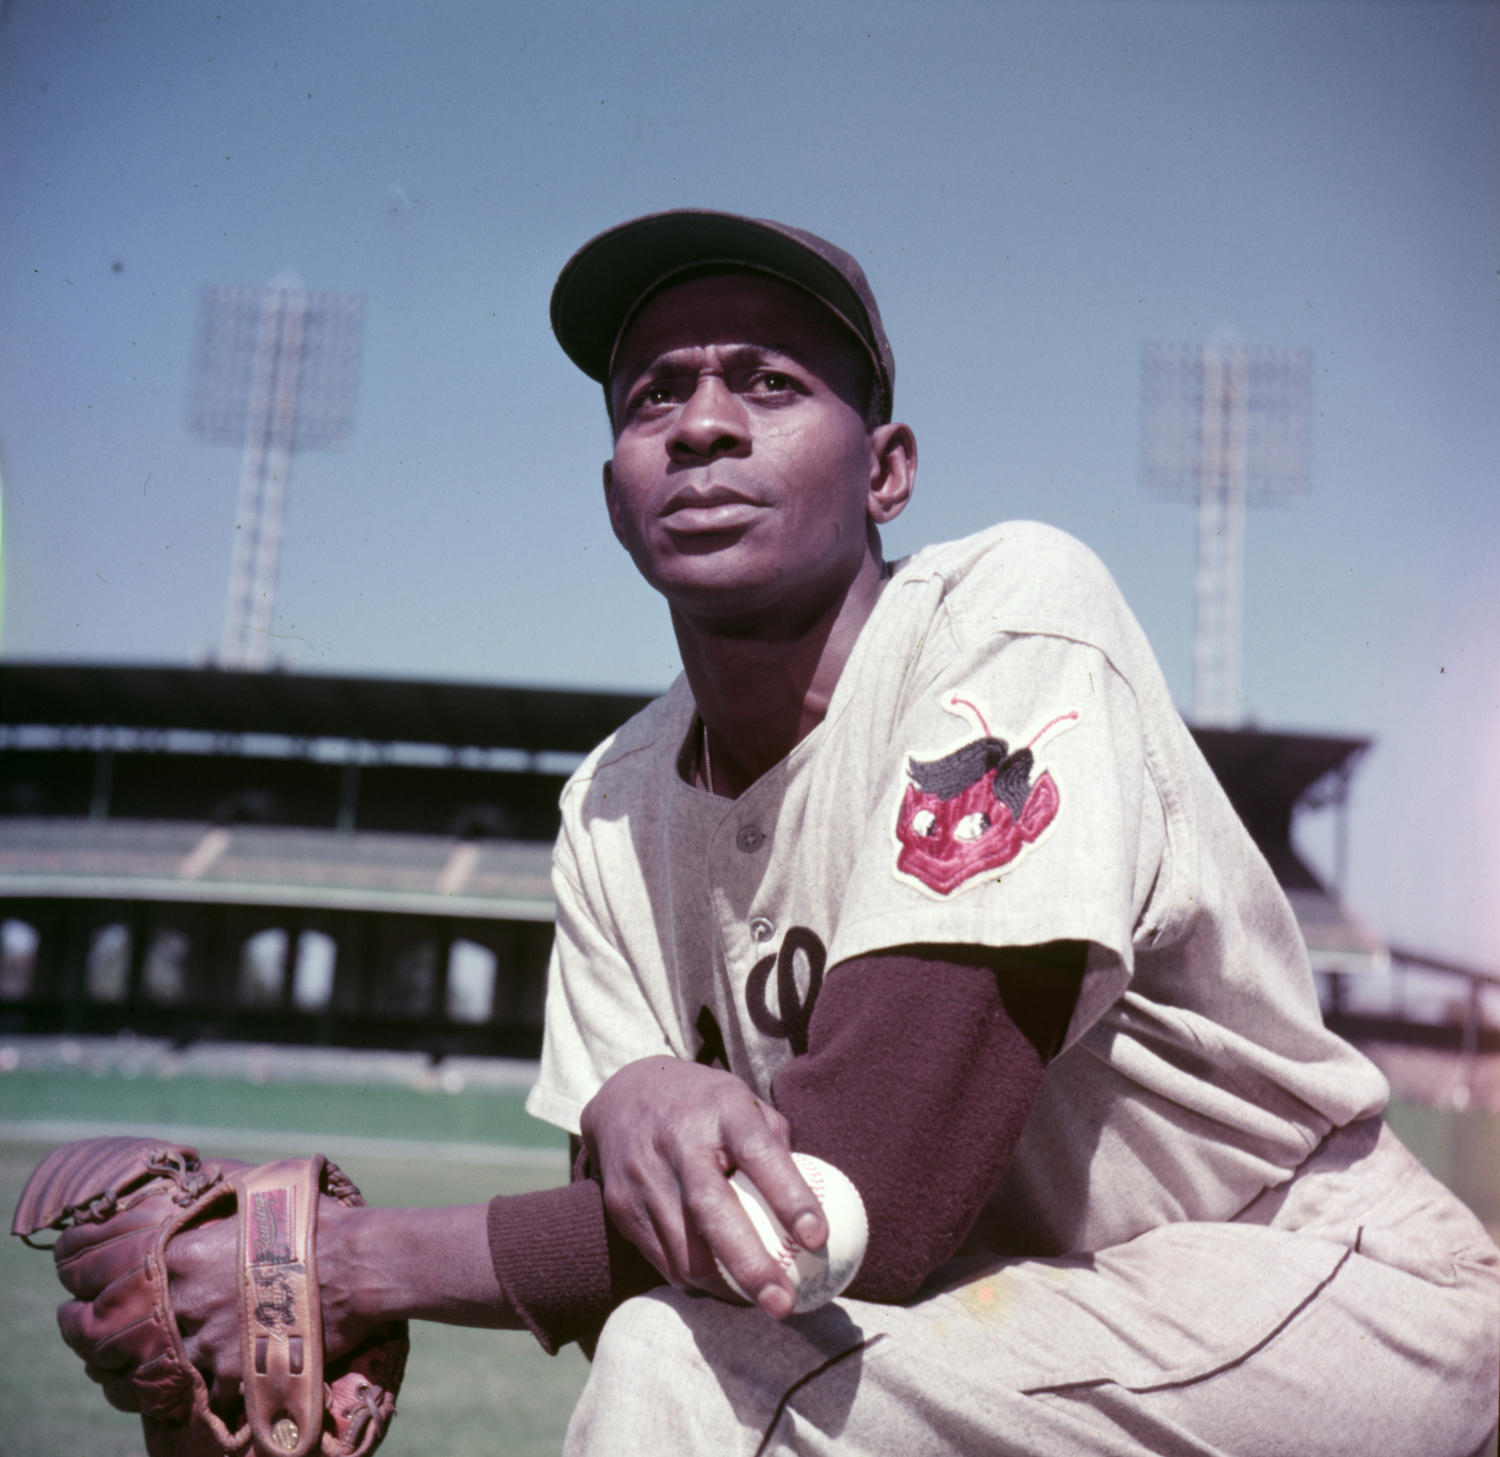 Satchel Paige spent three seasons with the St. Louis Browns from 1951-1953, earning a spot on All-Star Game rosters in both 1952 and 1953. (Look / National Baseball Hall of Fame and Museum)